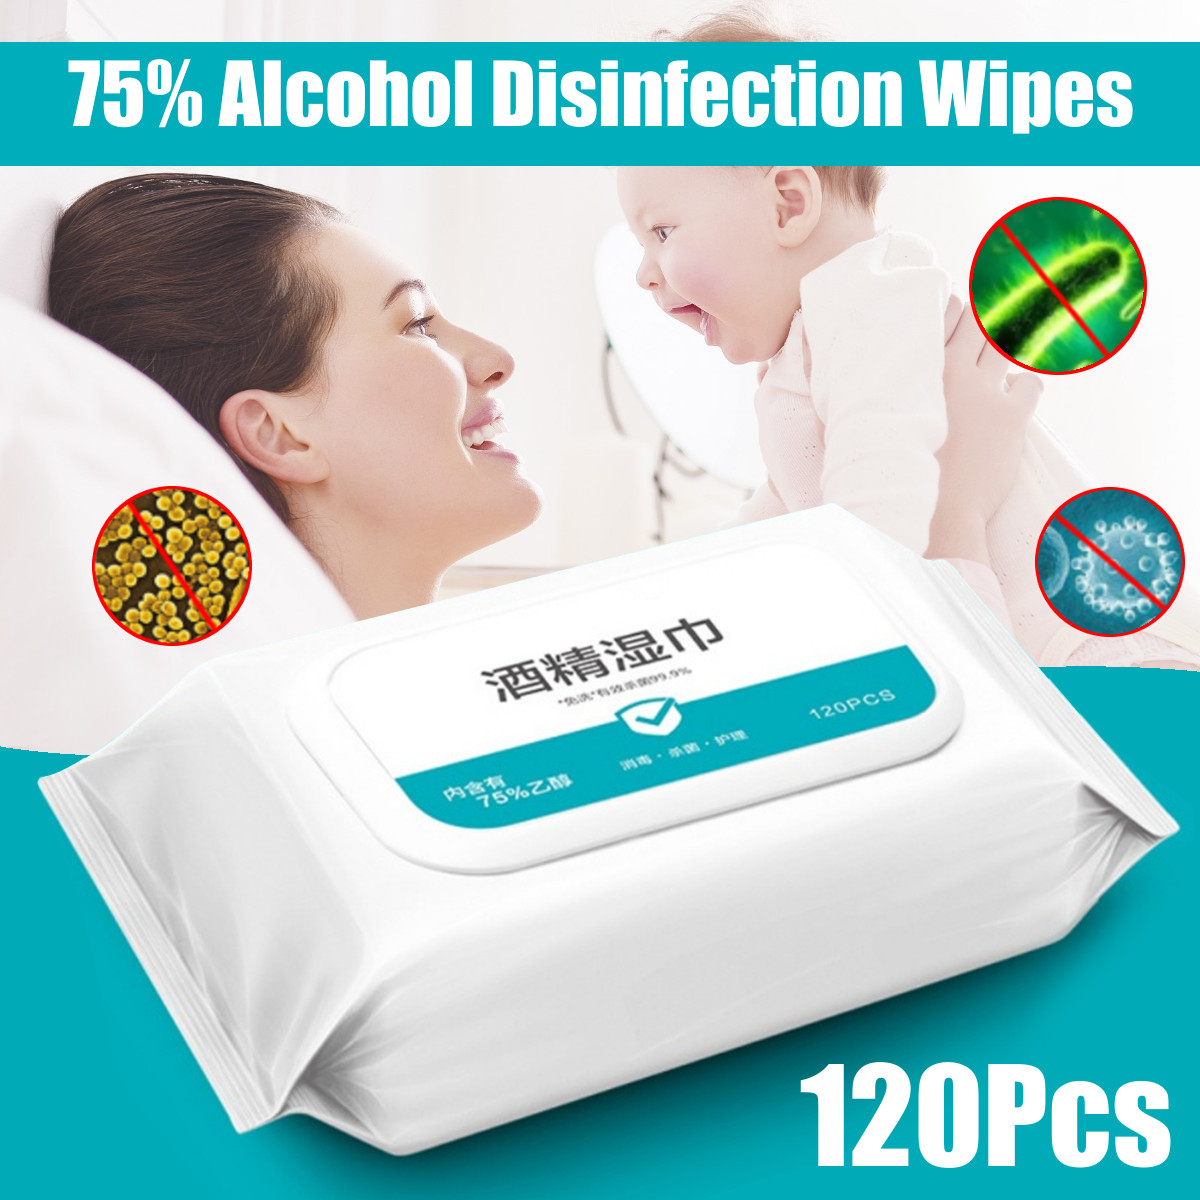 120PCS Alcohol Wipes Disinfection Antiseptic Alcohol Pad Antibacterial Wet Wipes Portable Disinfectant Wipes Sterilization Alcho